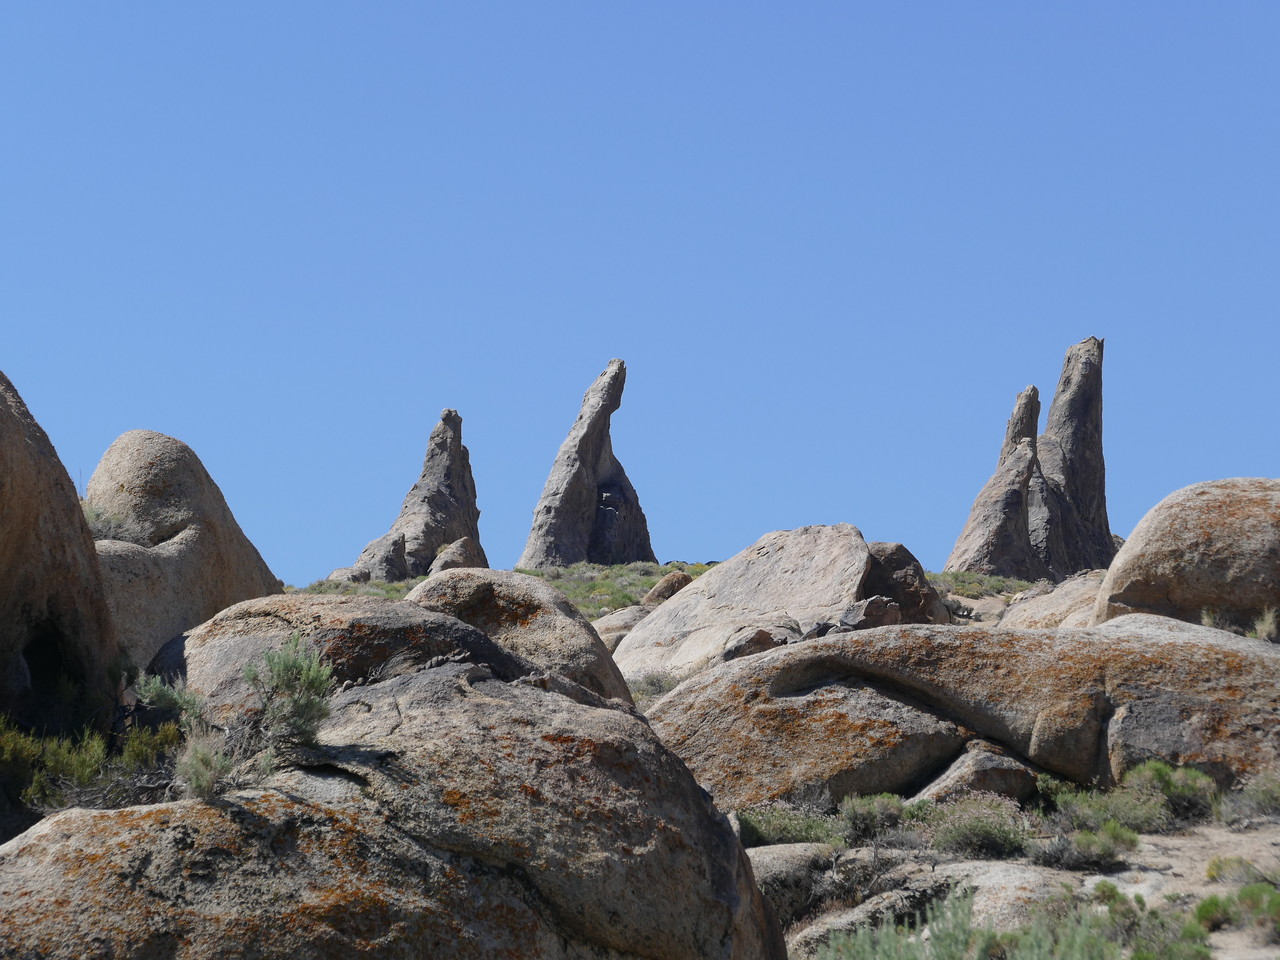 Lots of bare rock in the Alabama Hills.  Big rocks!